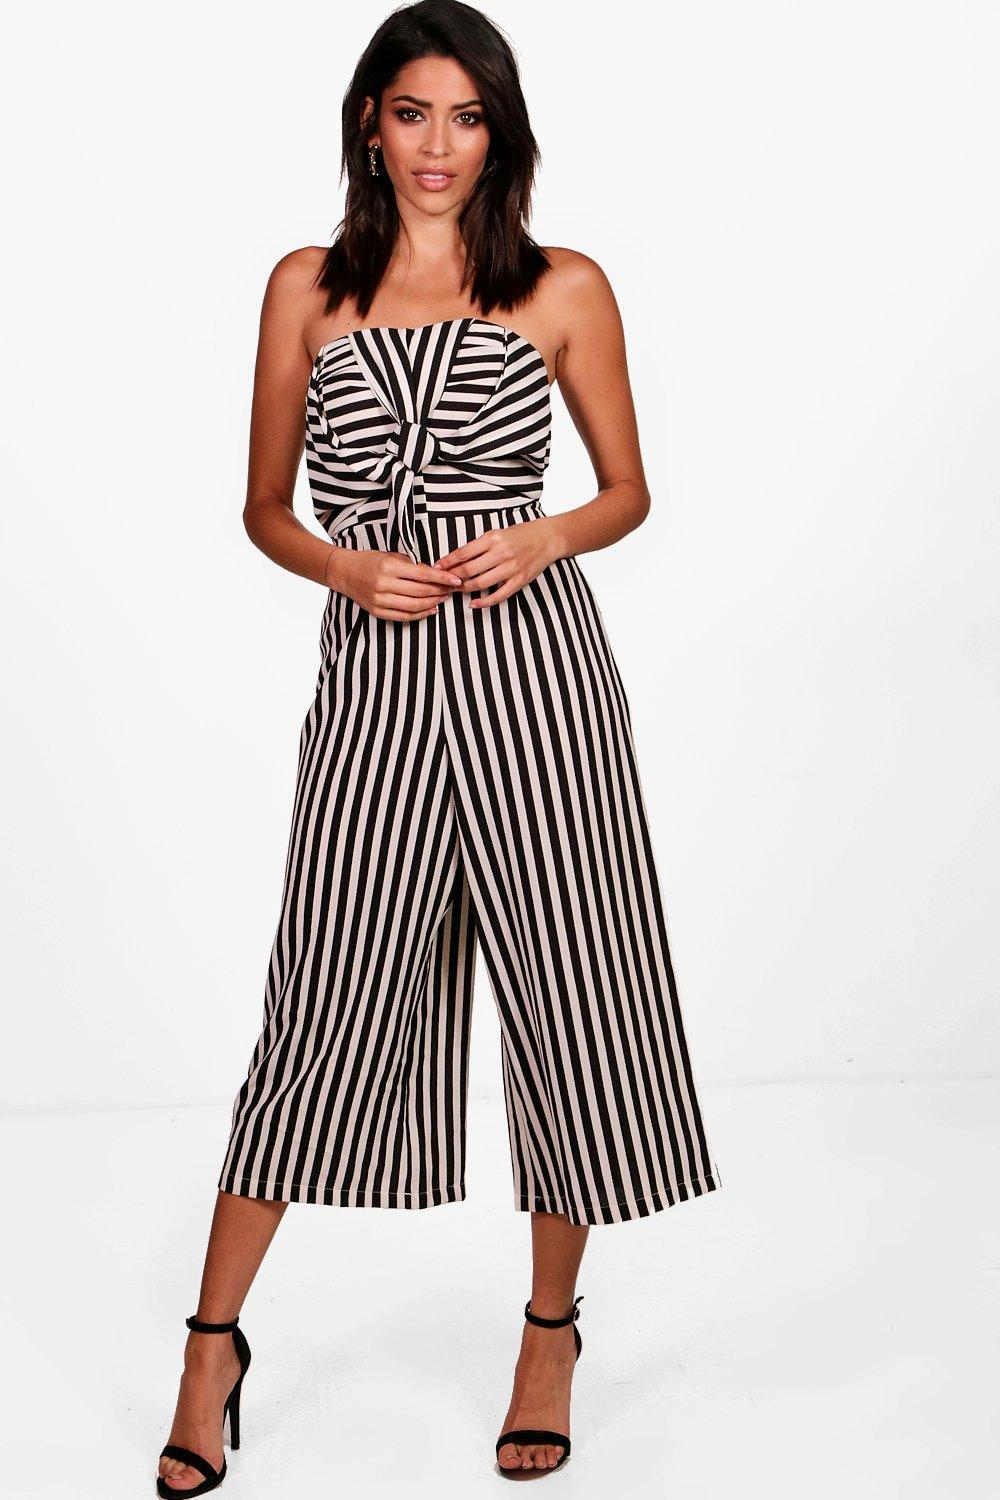 3a8dc5f00066 Lyst - Boohoo Twist Bow Front Culotte Jumpsuit in Black